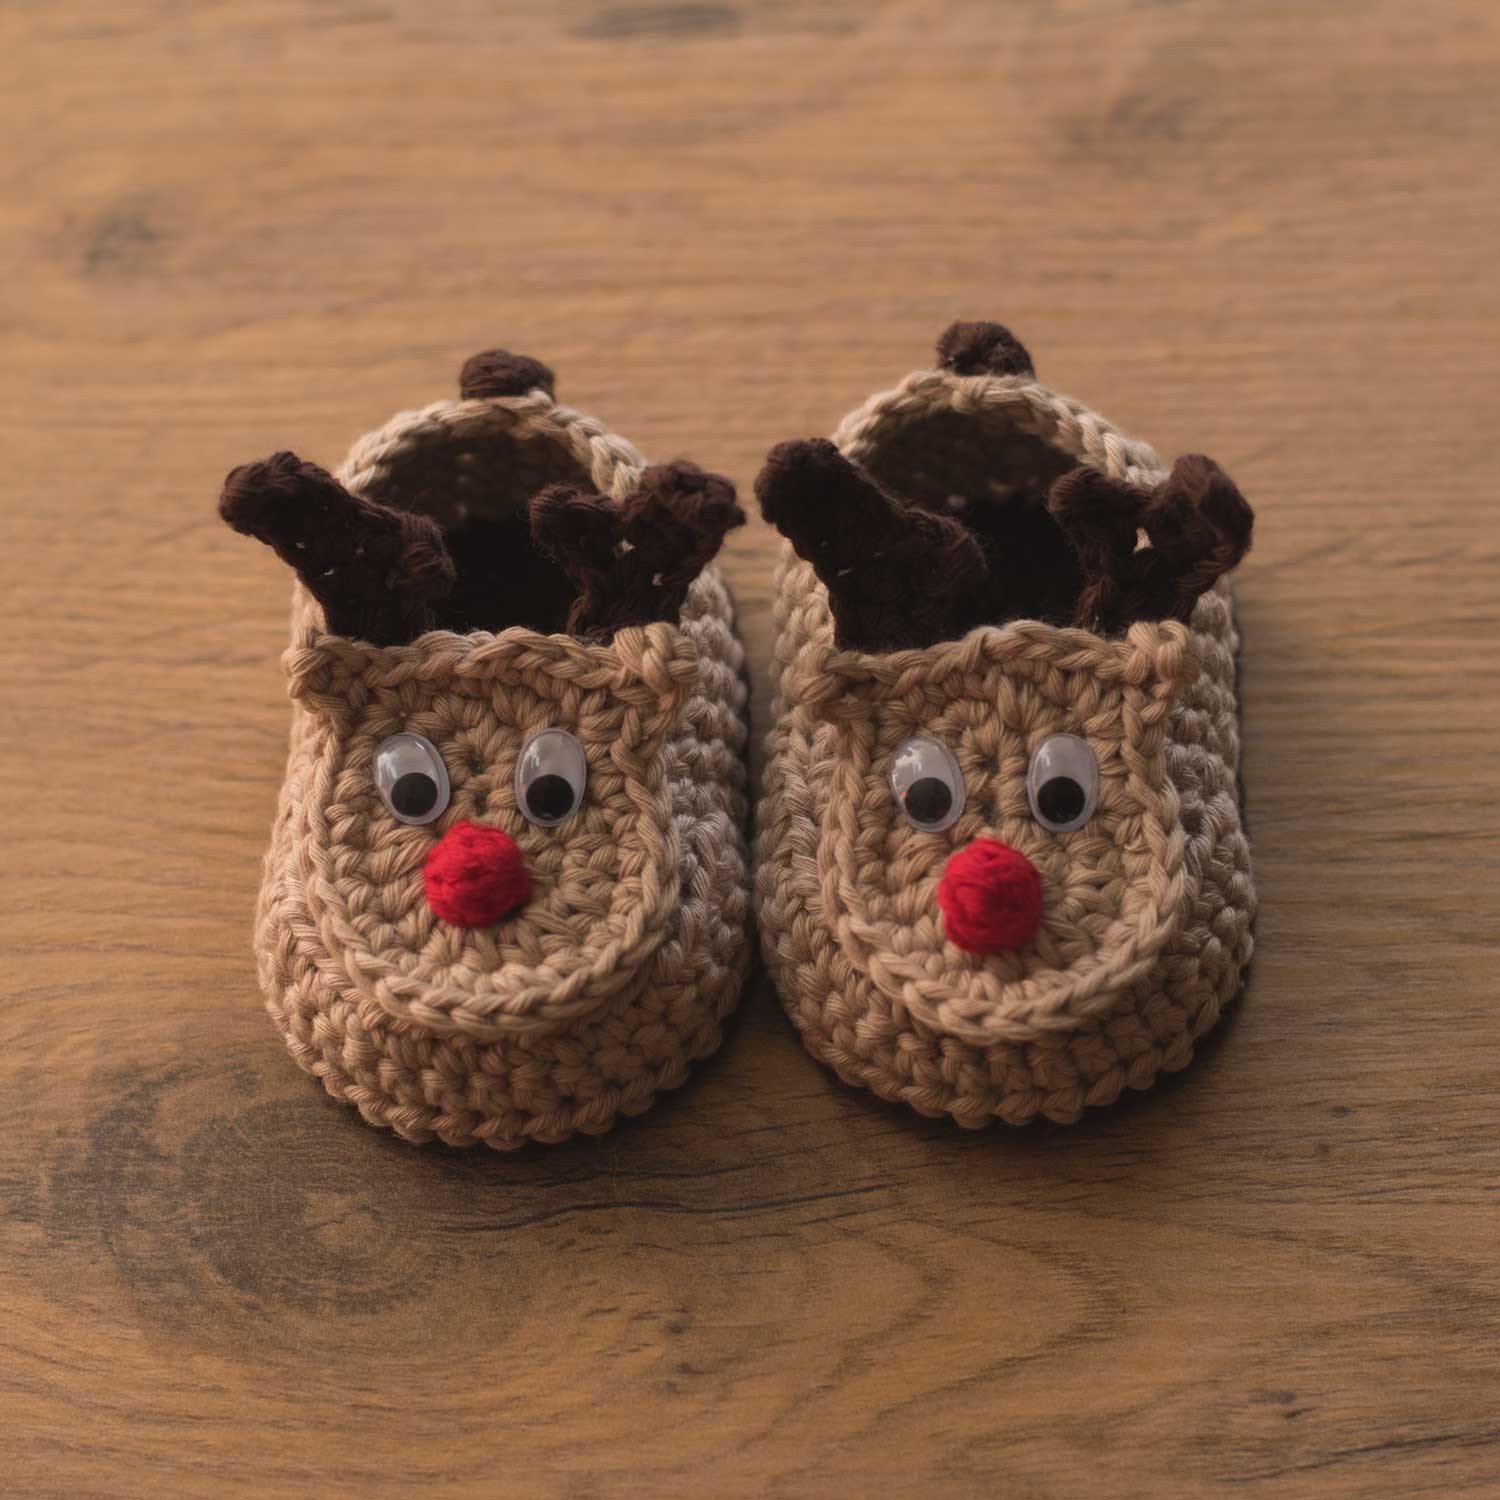 Crochet Baby Booties Luxury Oh Deer – Crochet Reindeer Baby Booties – Croby Patterns Of Crochet Baby Booties Fresh Crochet Baby Mary Jane Booties Free Patterns